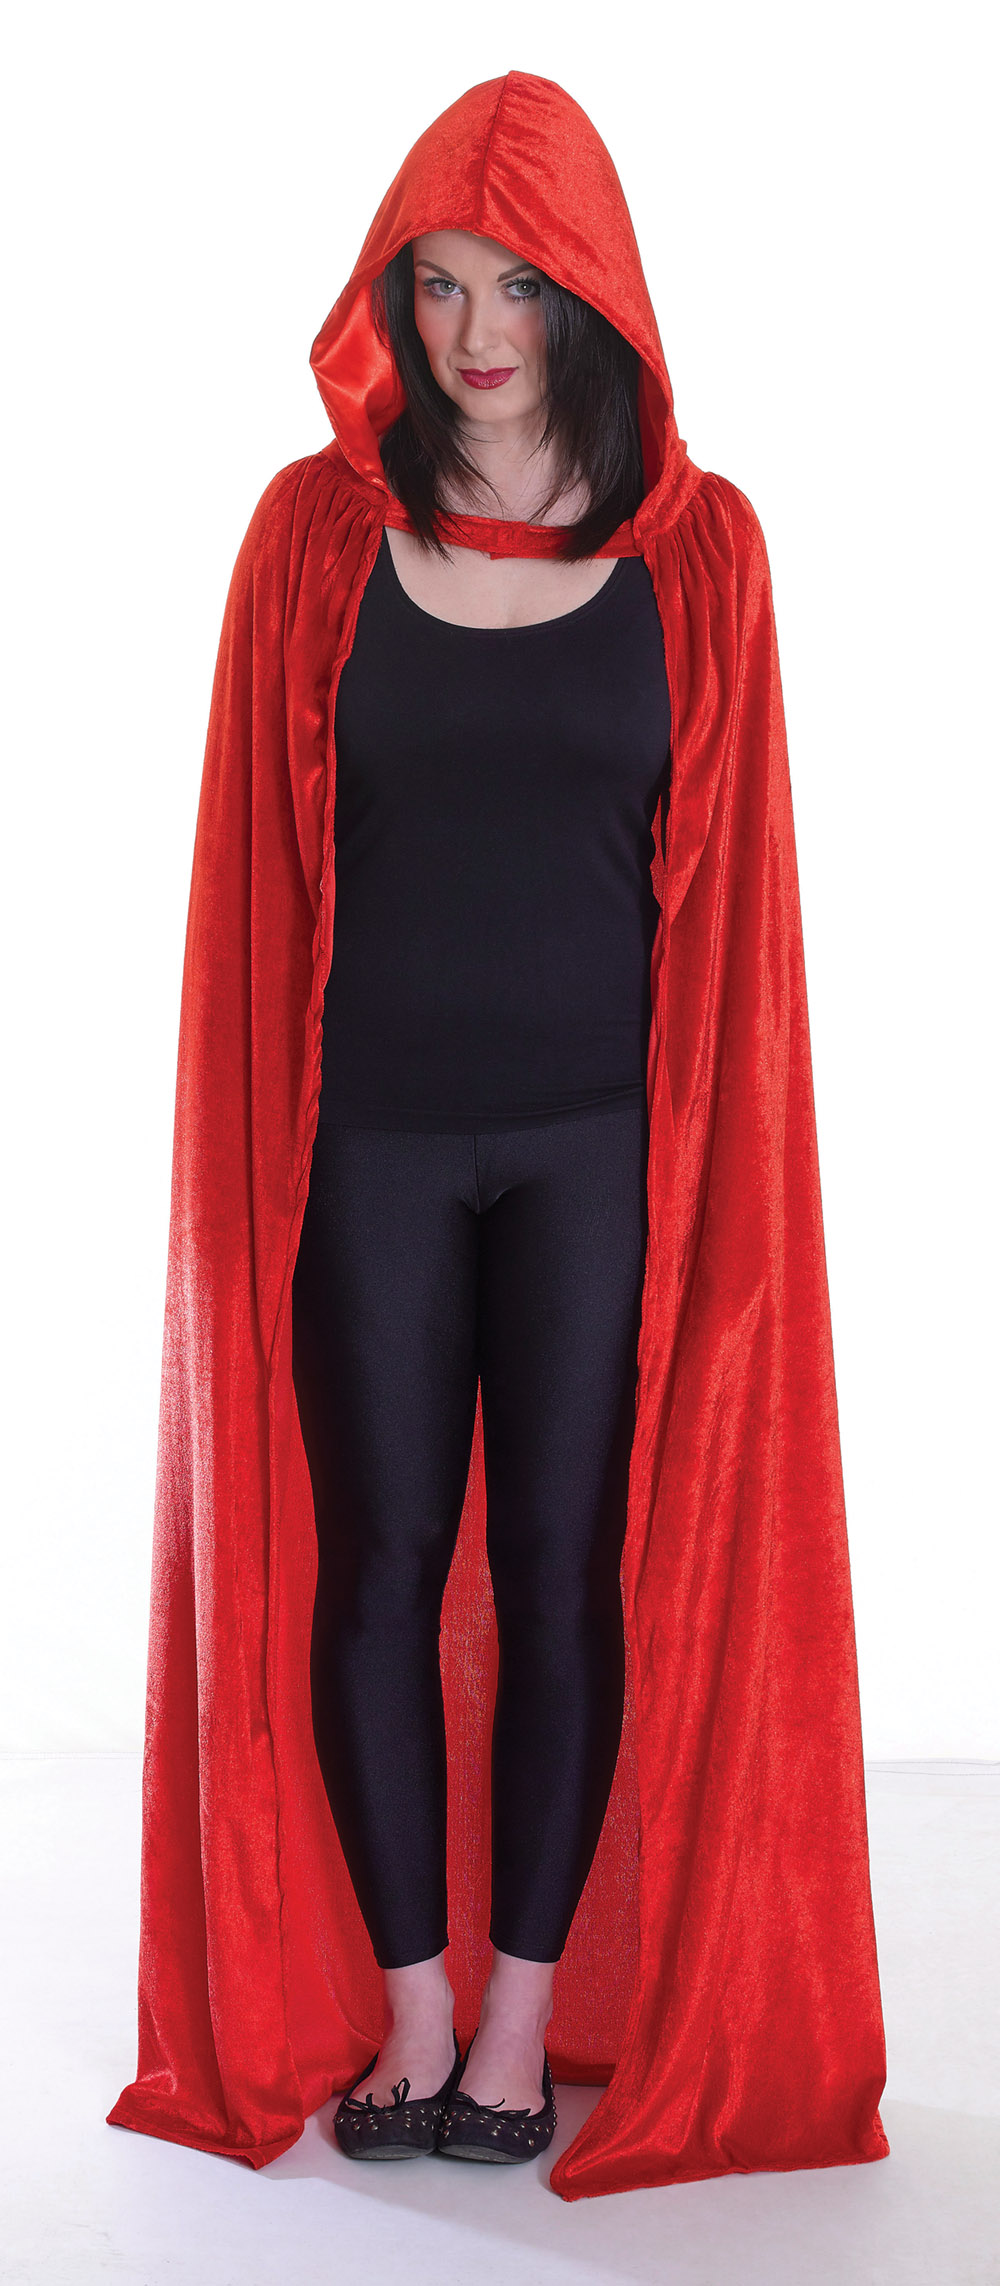 Red Velvet Cloak Fancy Dress Costume Red Riding Hood Fairy Tale Halloween Outfit